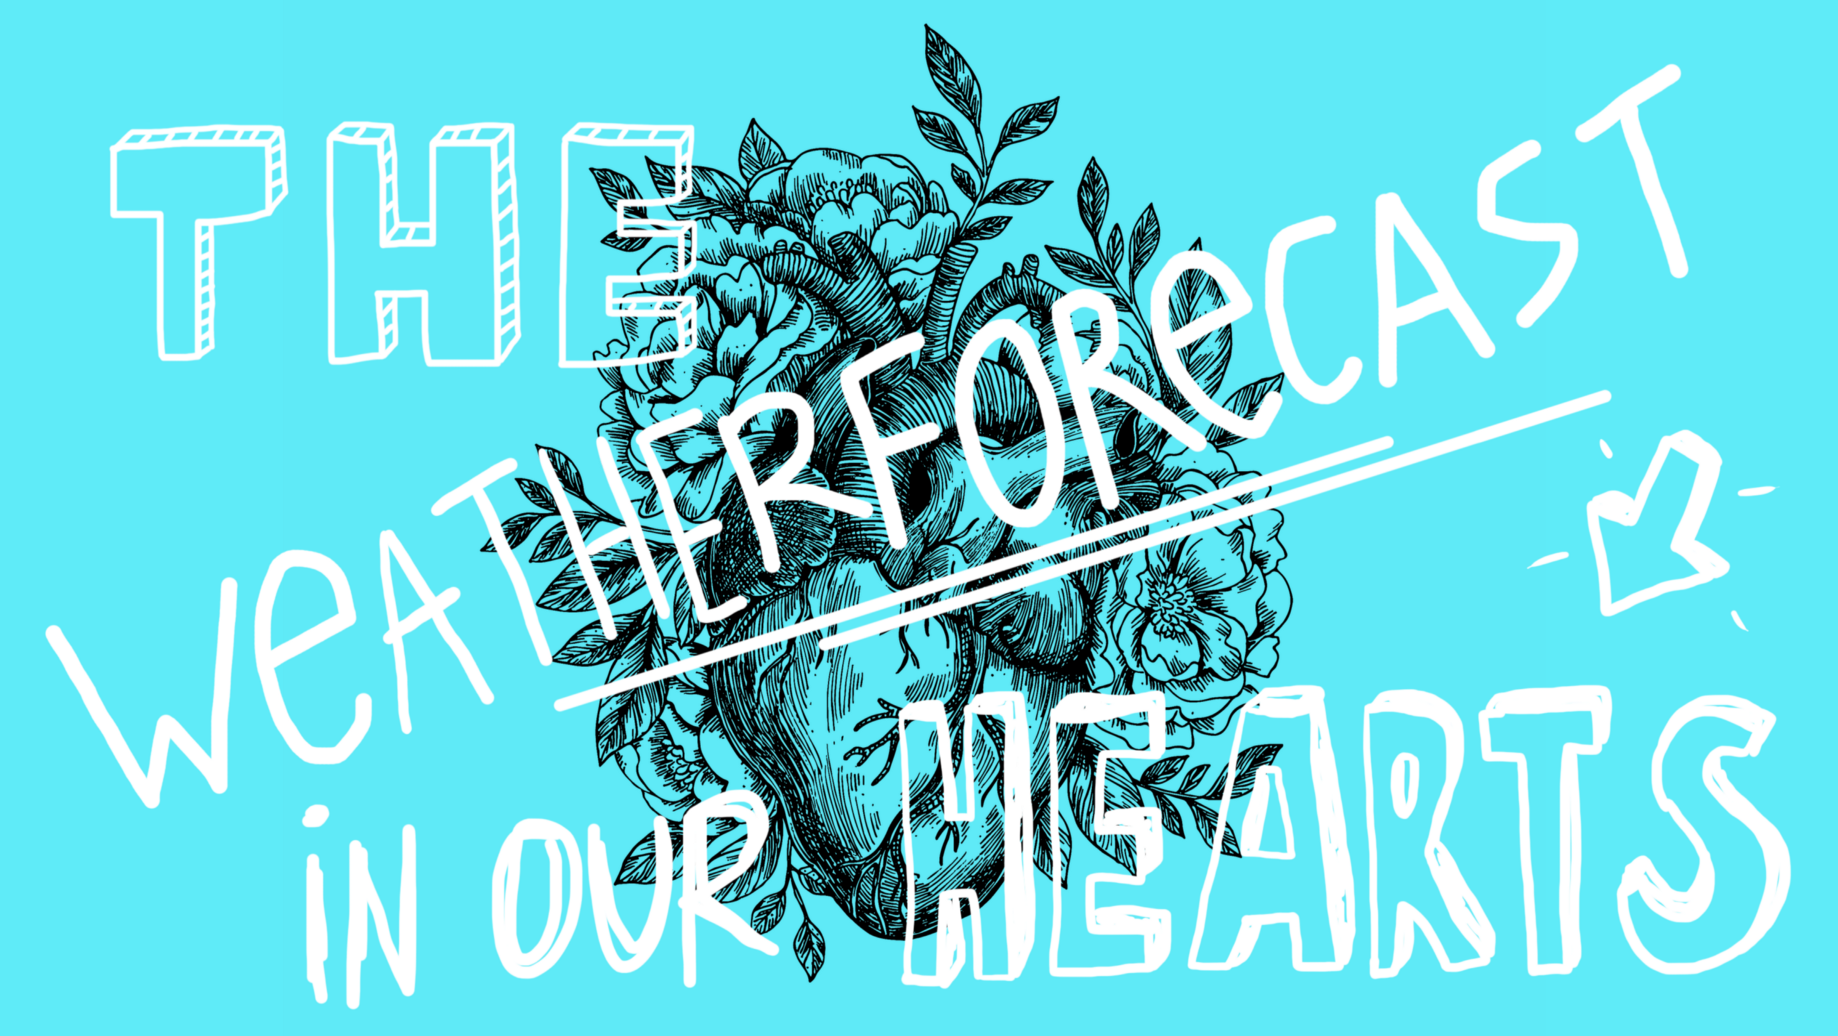 The weather forecast in our hearts - Lisa Sibbing - Medium